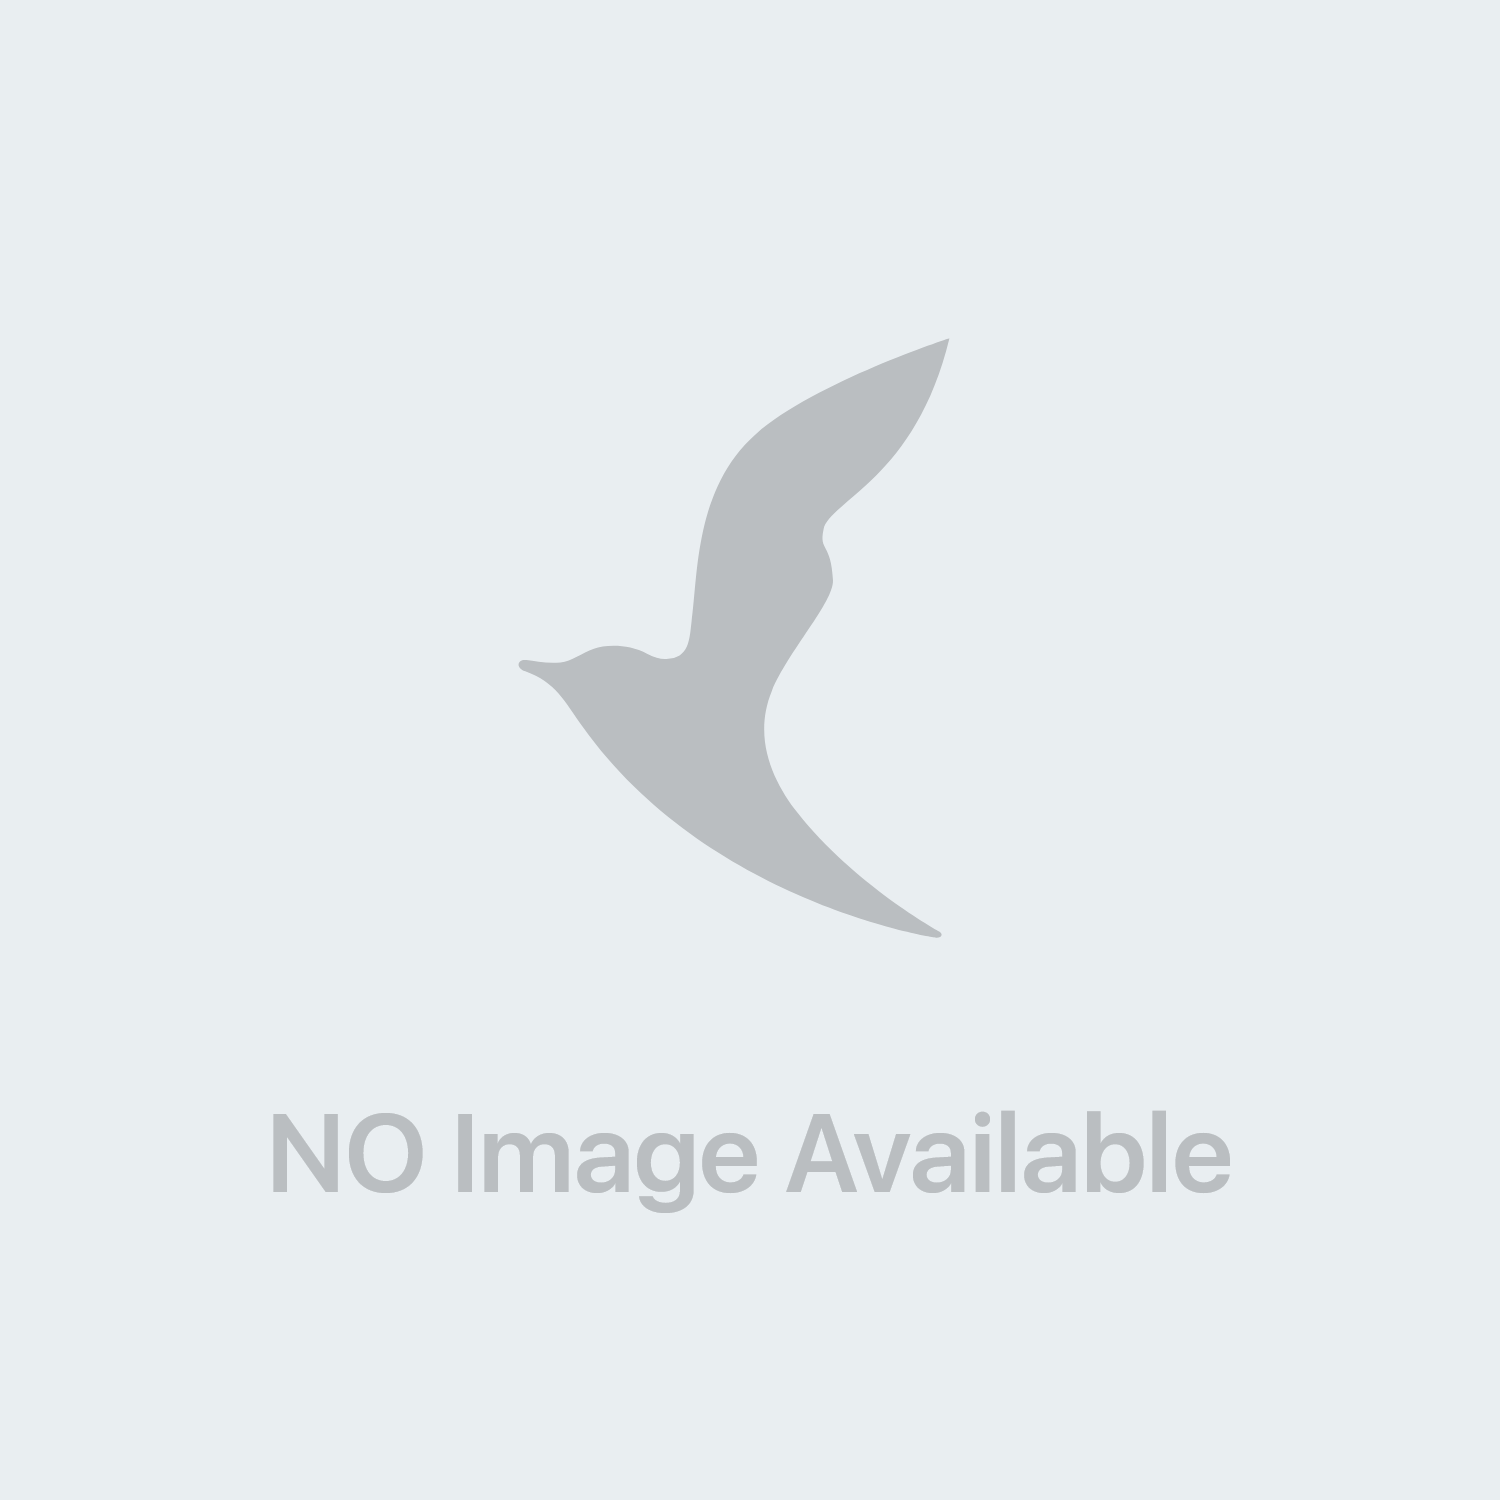 Planter's Aloe Vera Crema Viso 24 Ore Effetto Lifting Antietà 50 Ml